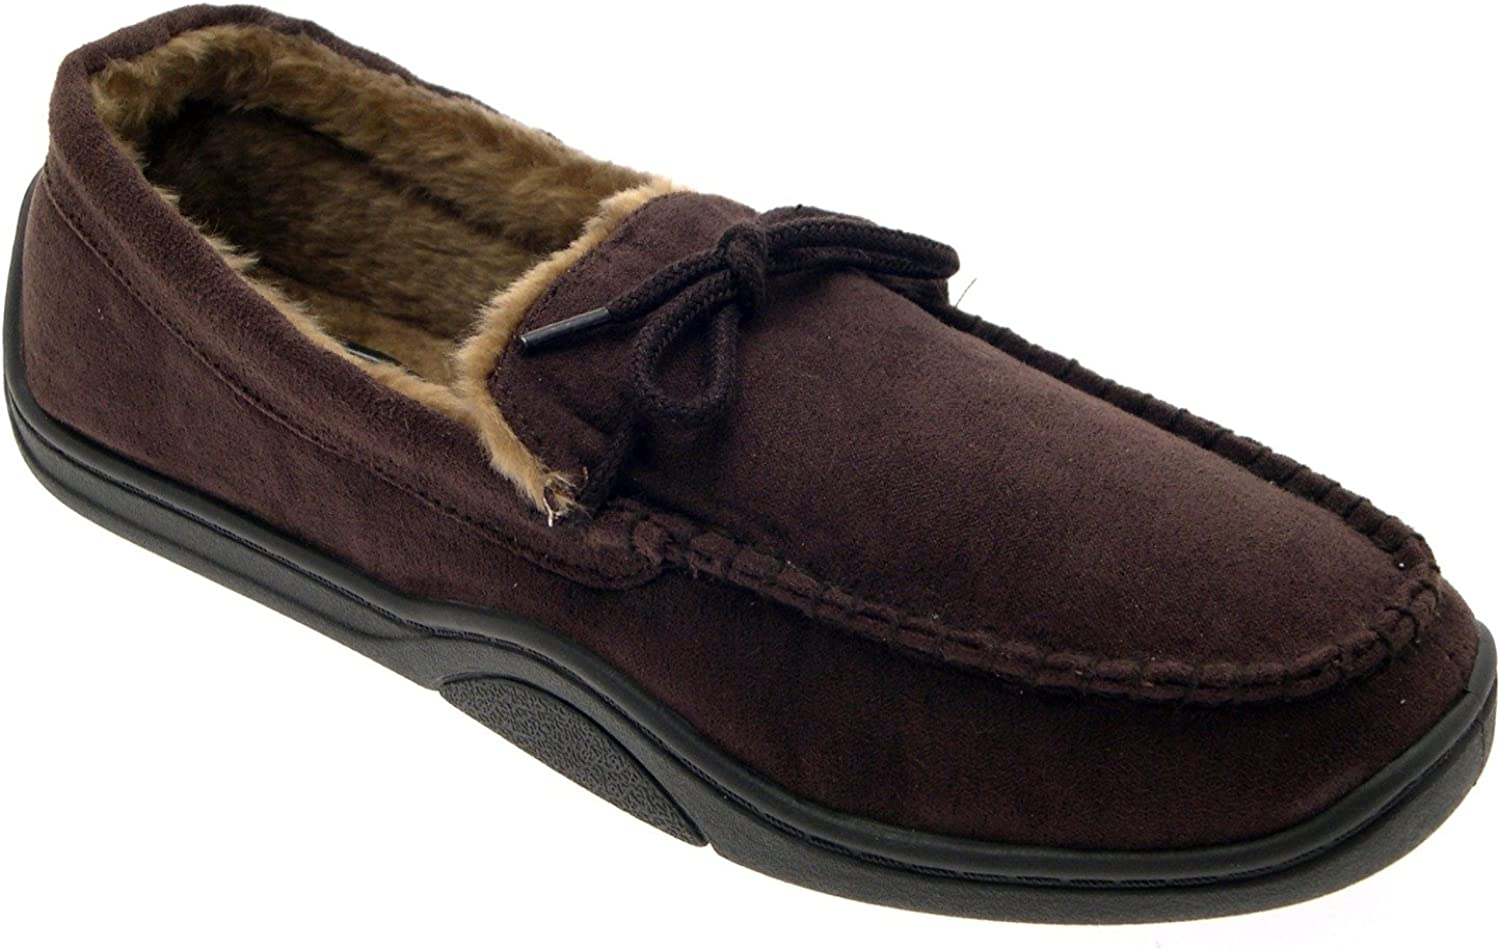 Mens soft sole suede sheepskin moccasin slipper warm size 8 made in england